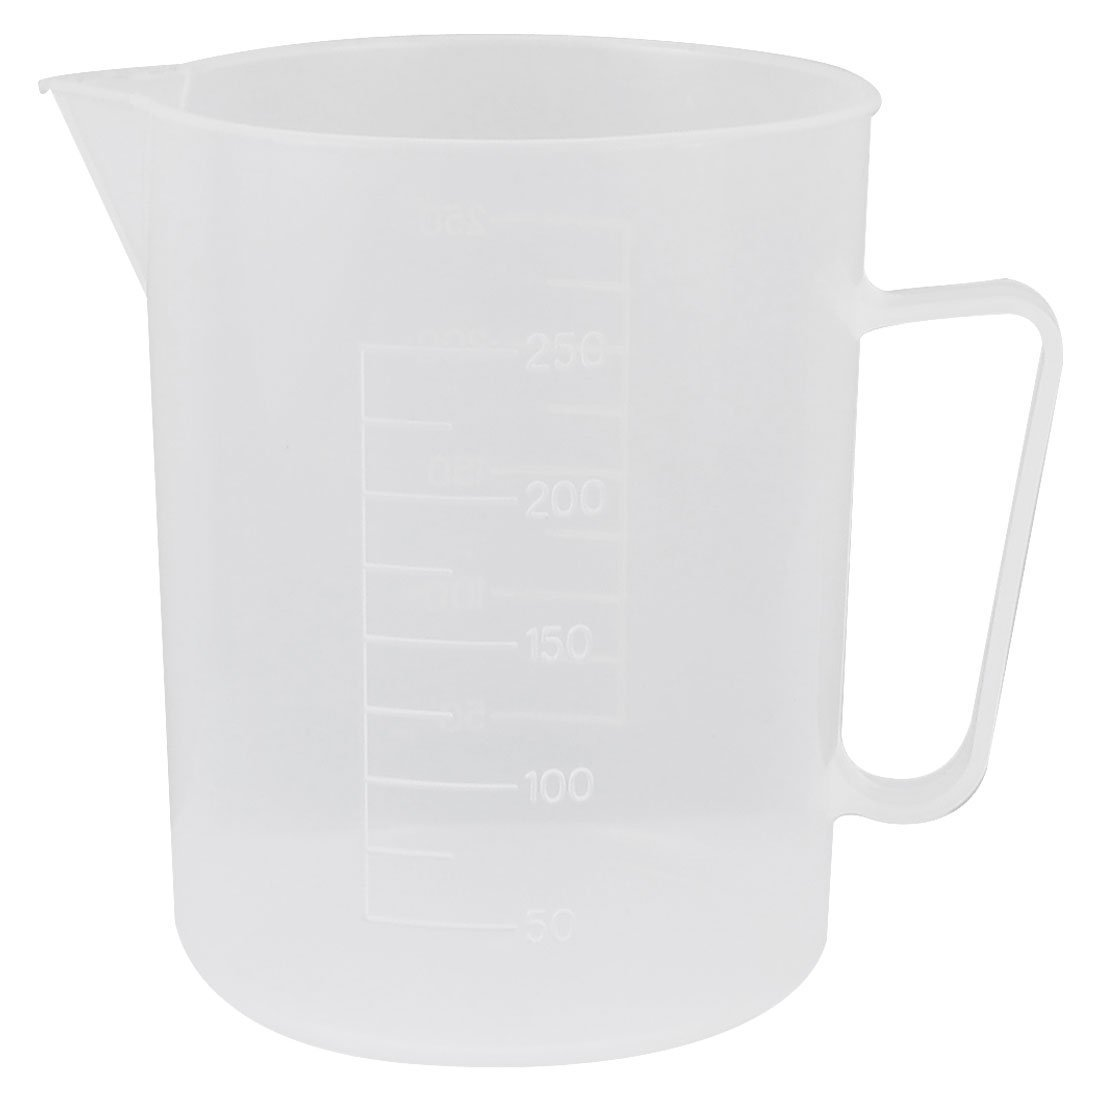 Sourcingmap Laboratory 250mL Capacity Clear White Plastic Measuring Cup a13042200ux0051